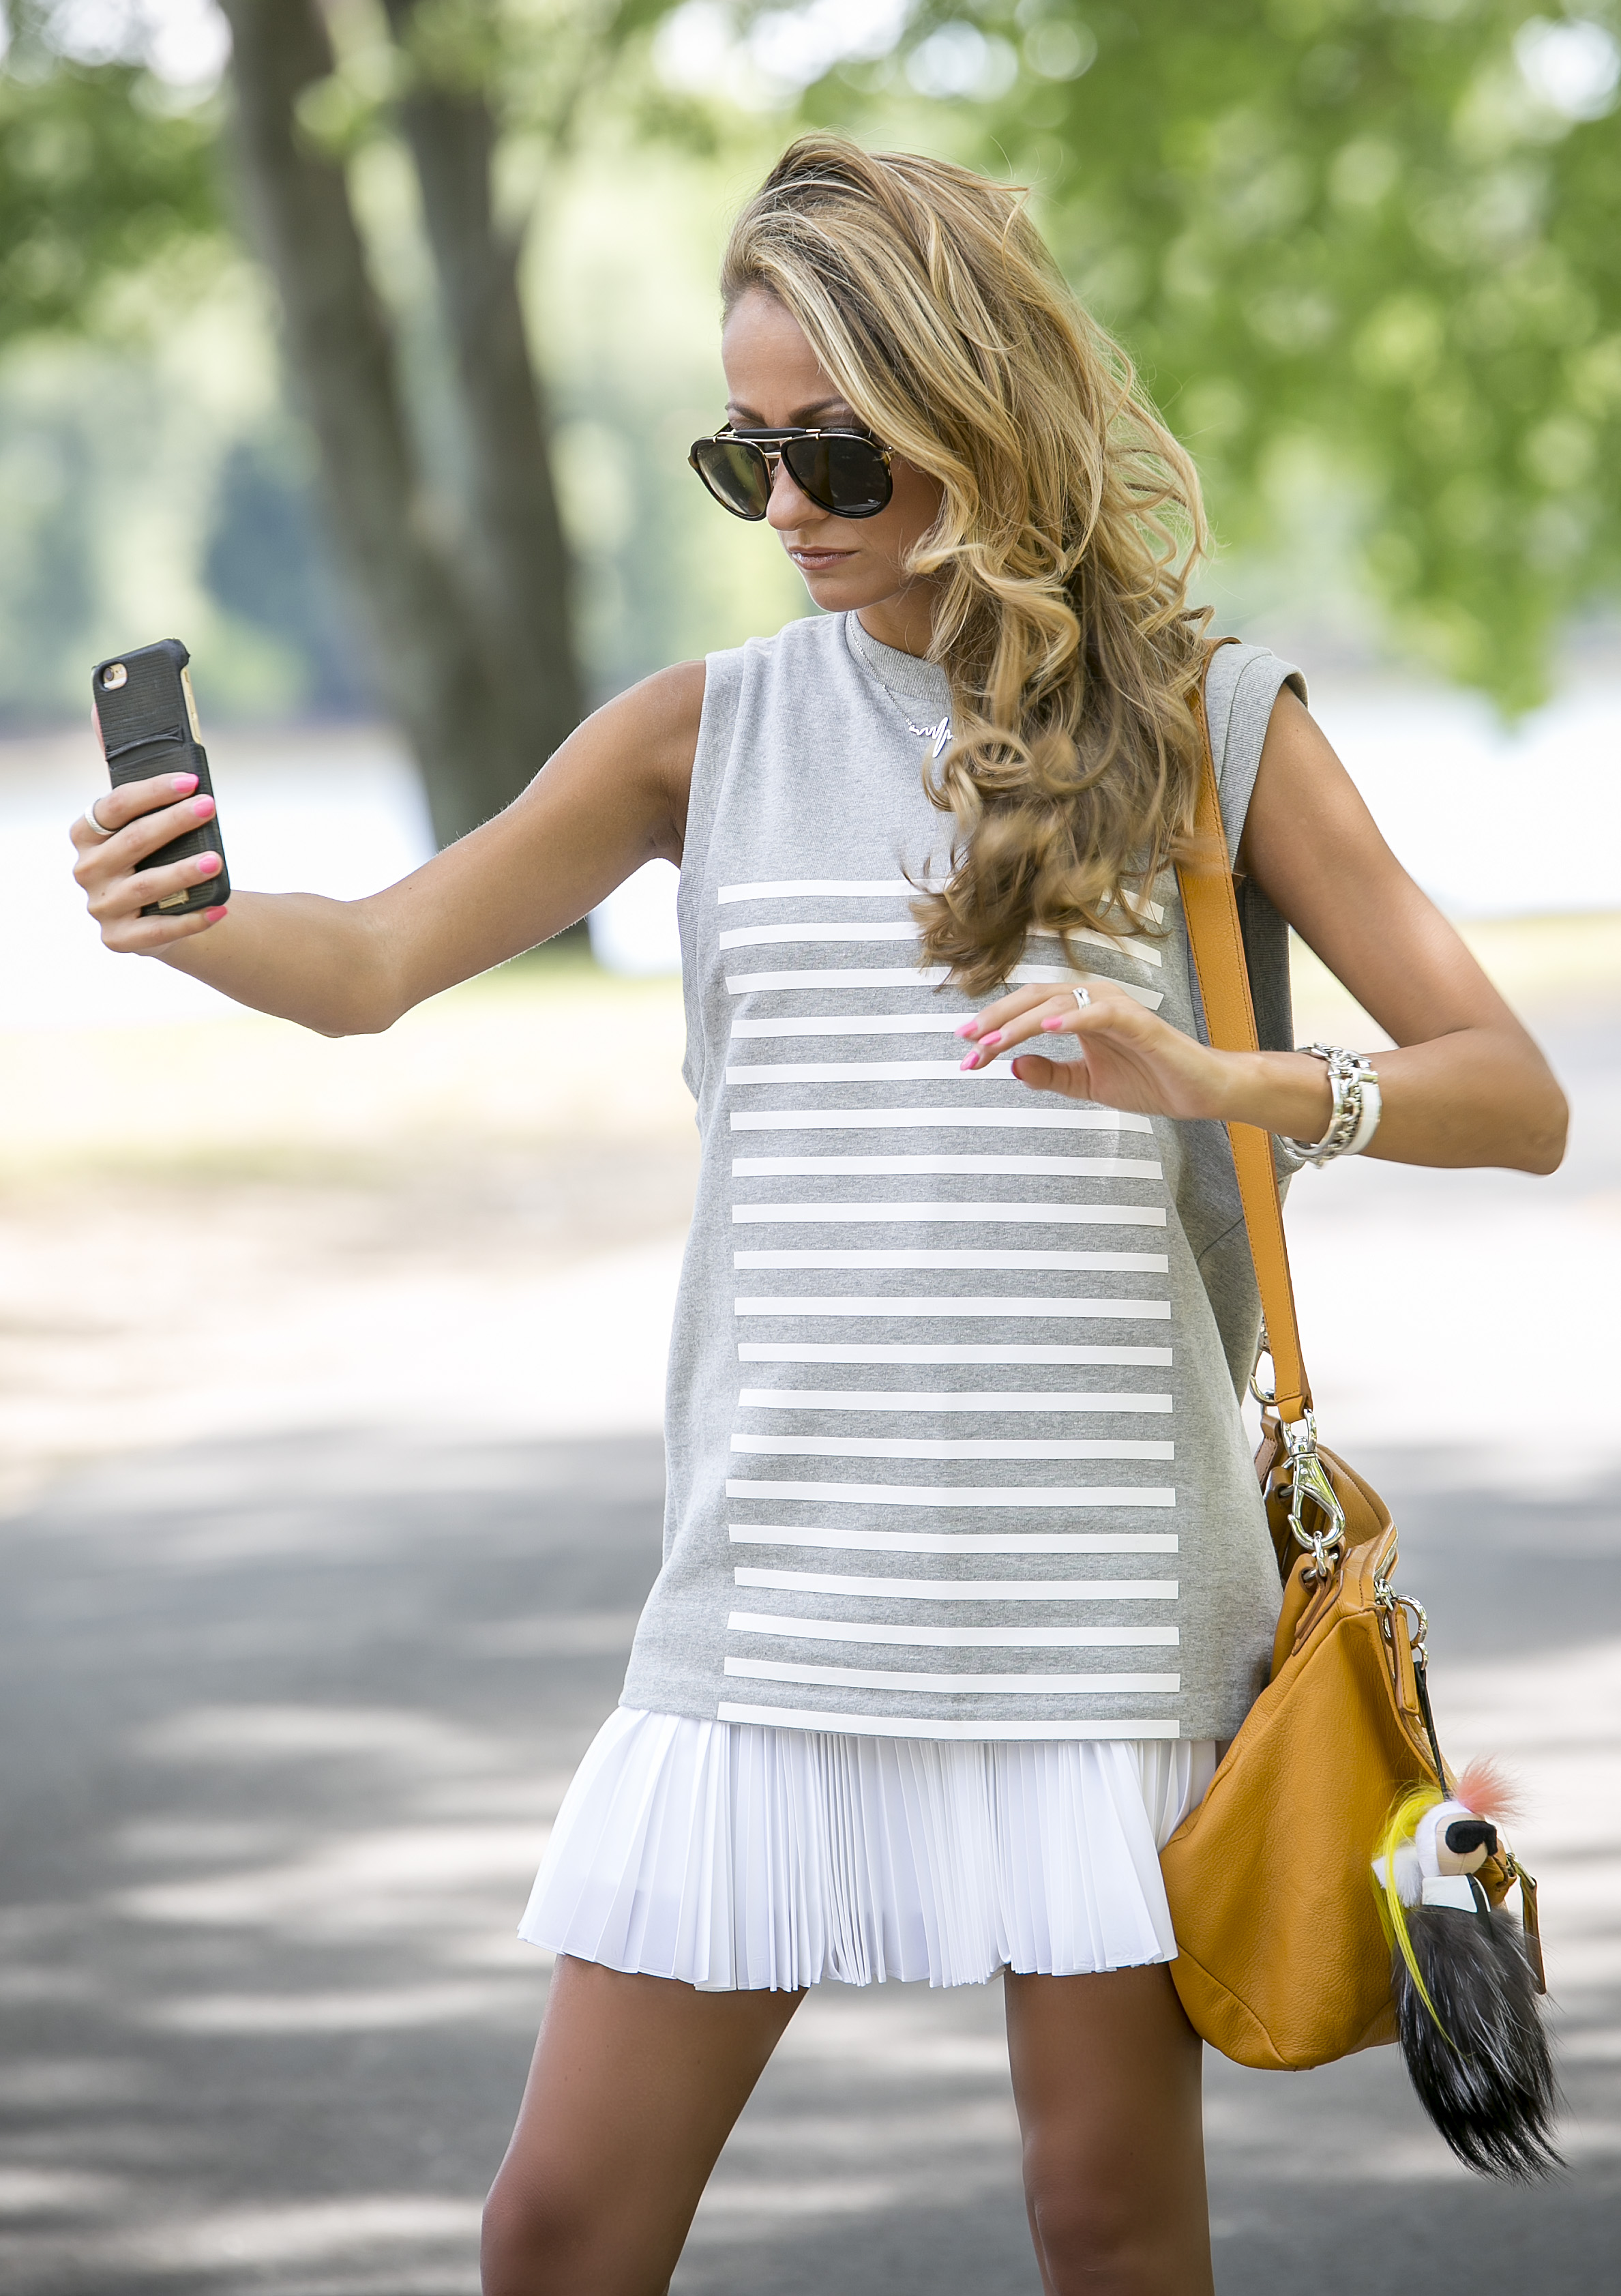 North of Manhattan showing summer style in Alexander Wang top, and skirt taking a selfie